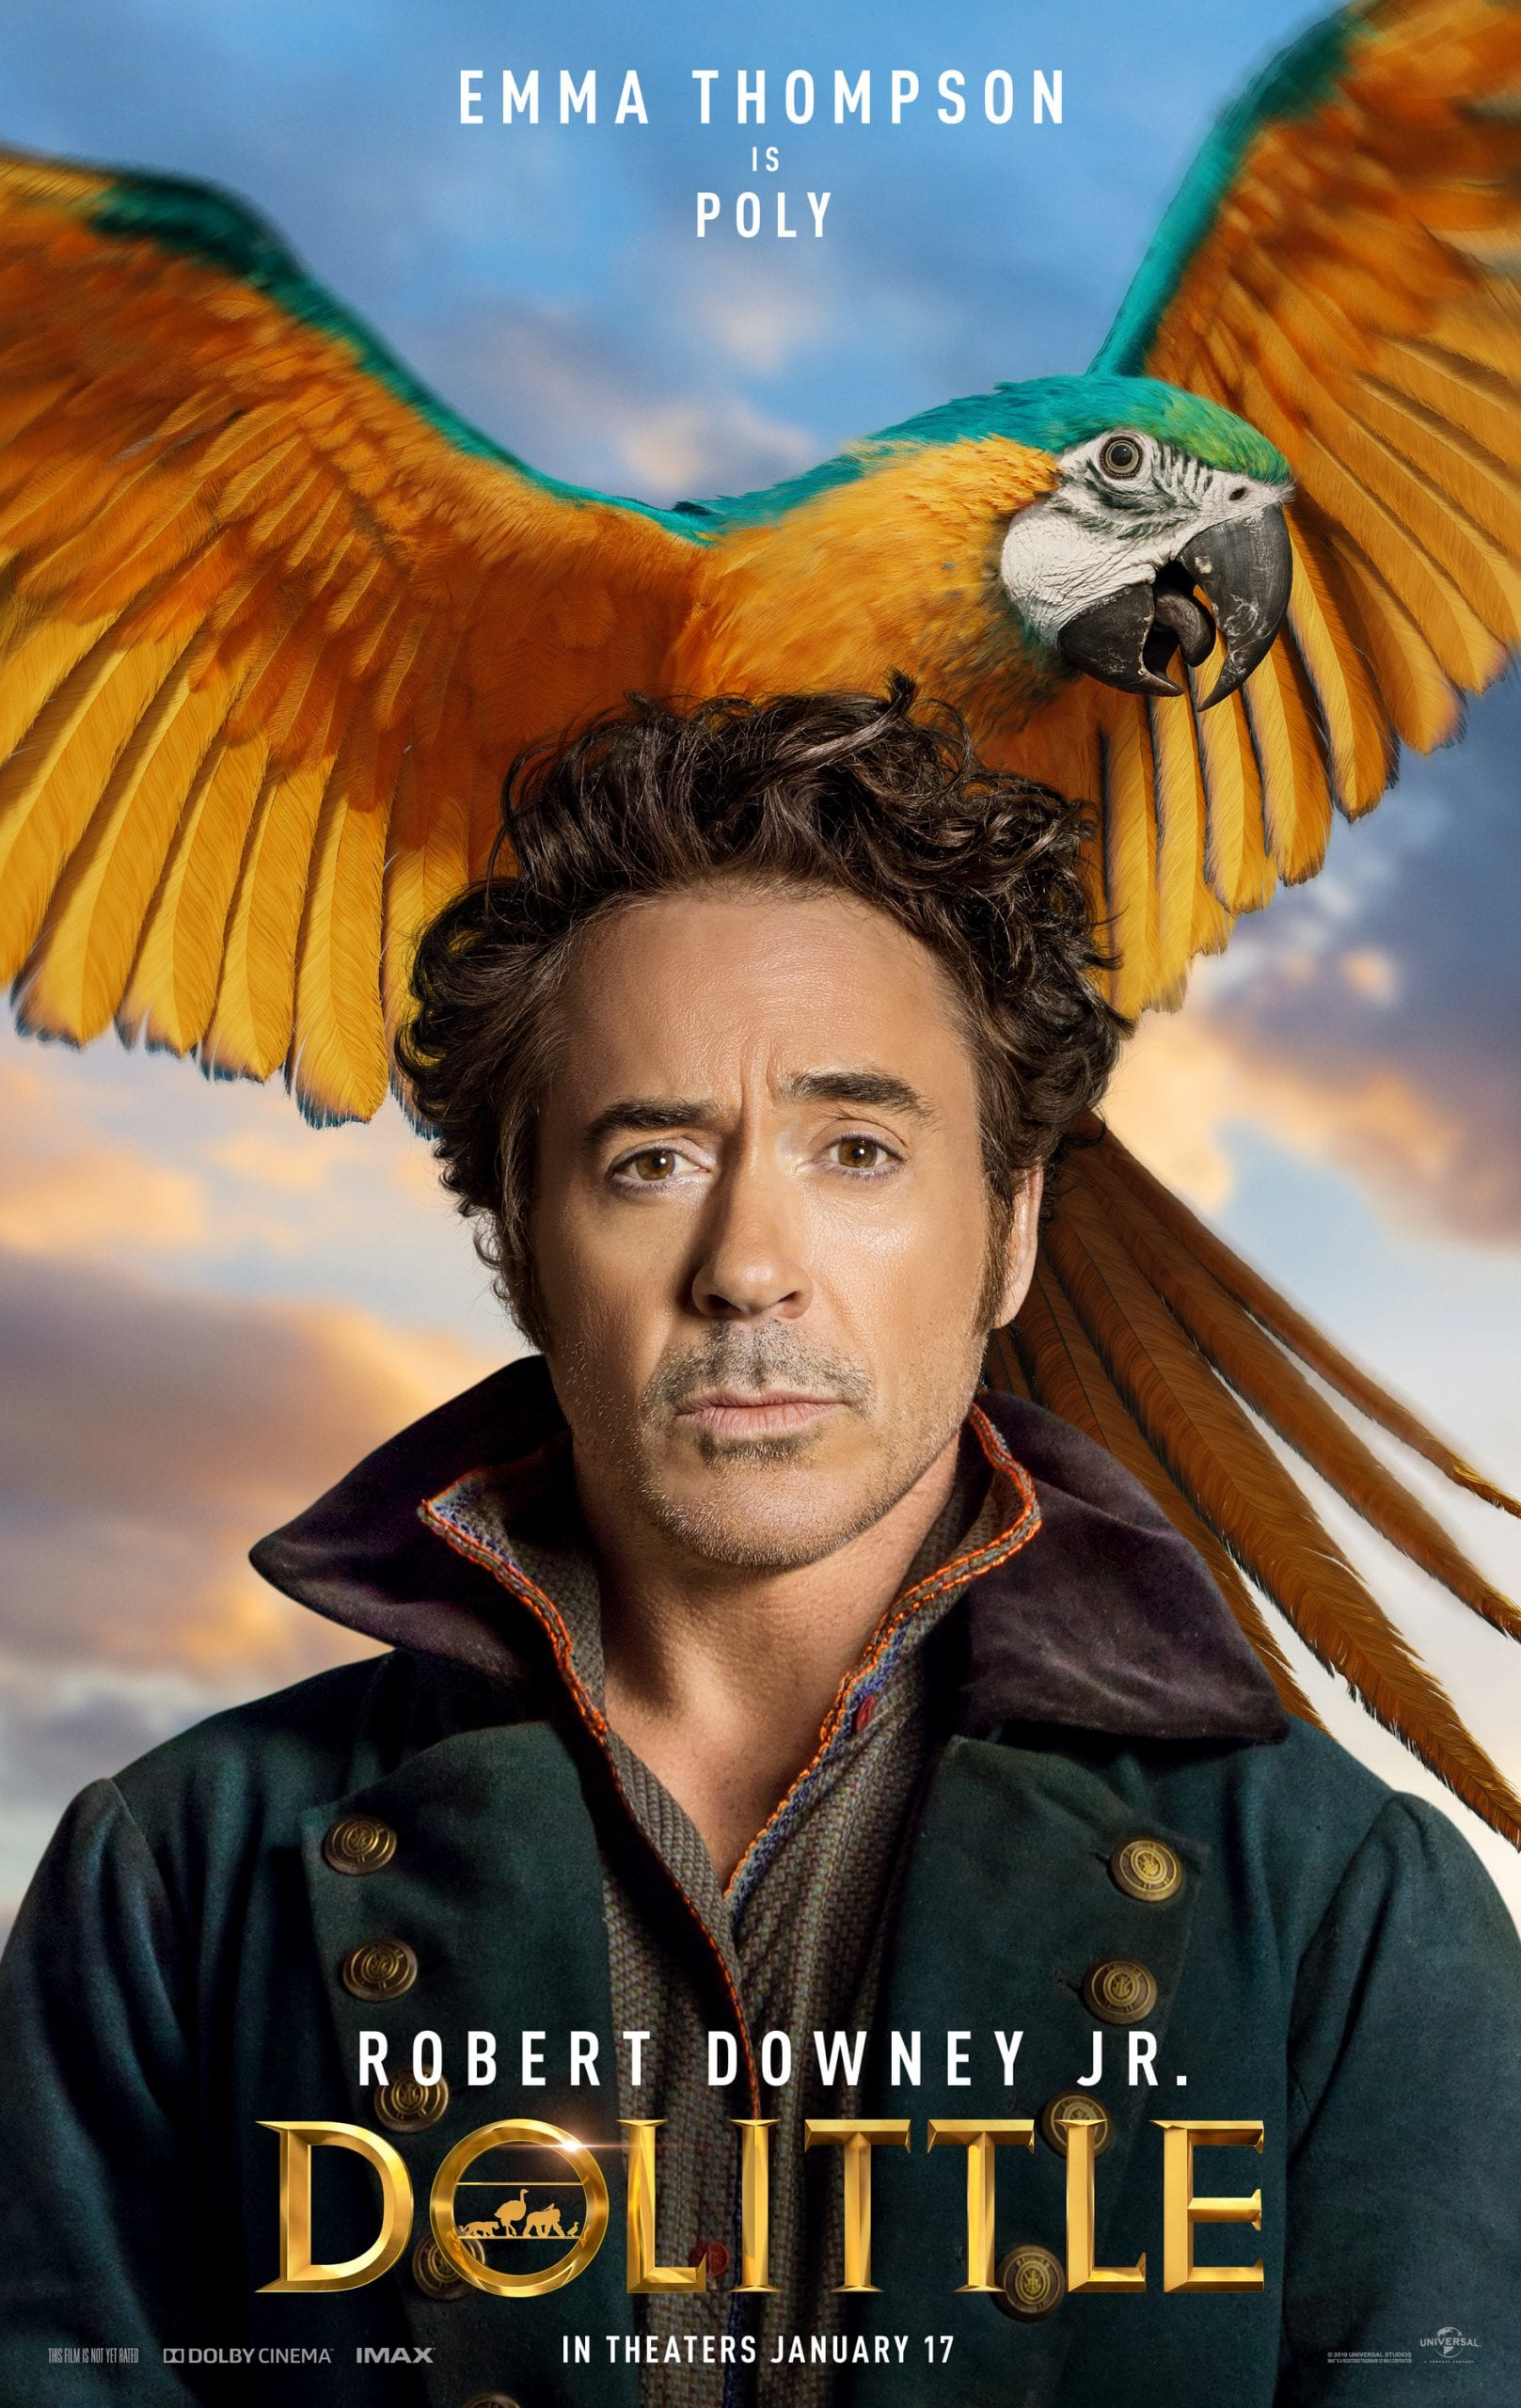 Dolittle Character Posters Emma Thompson is Poly